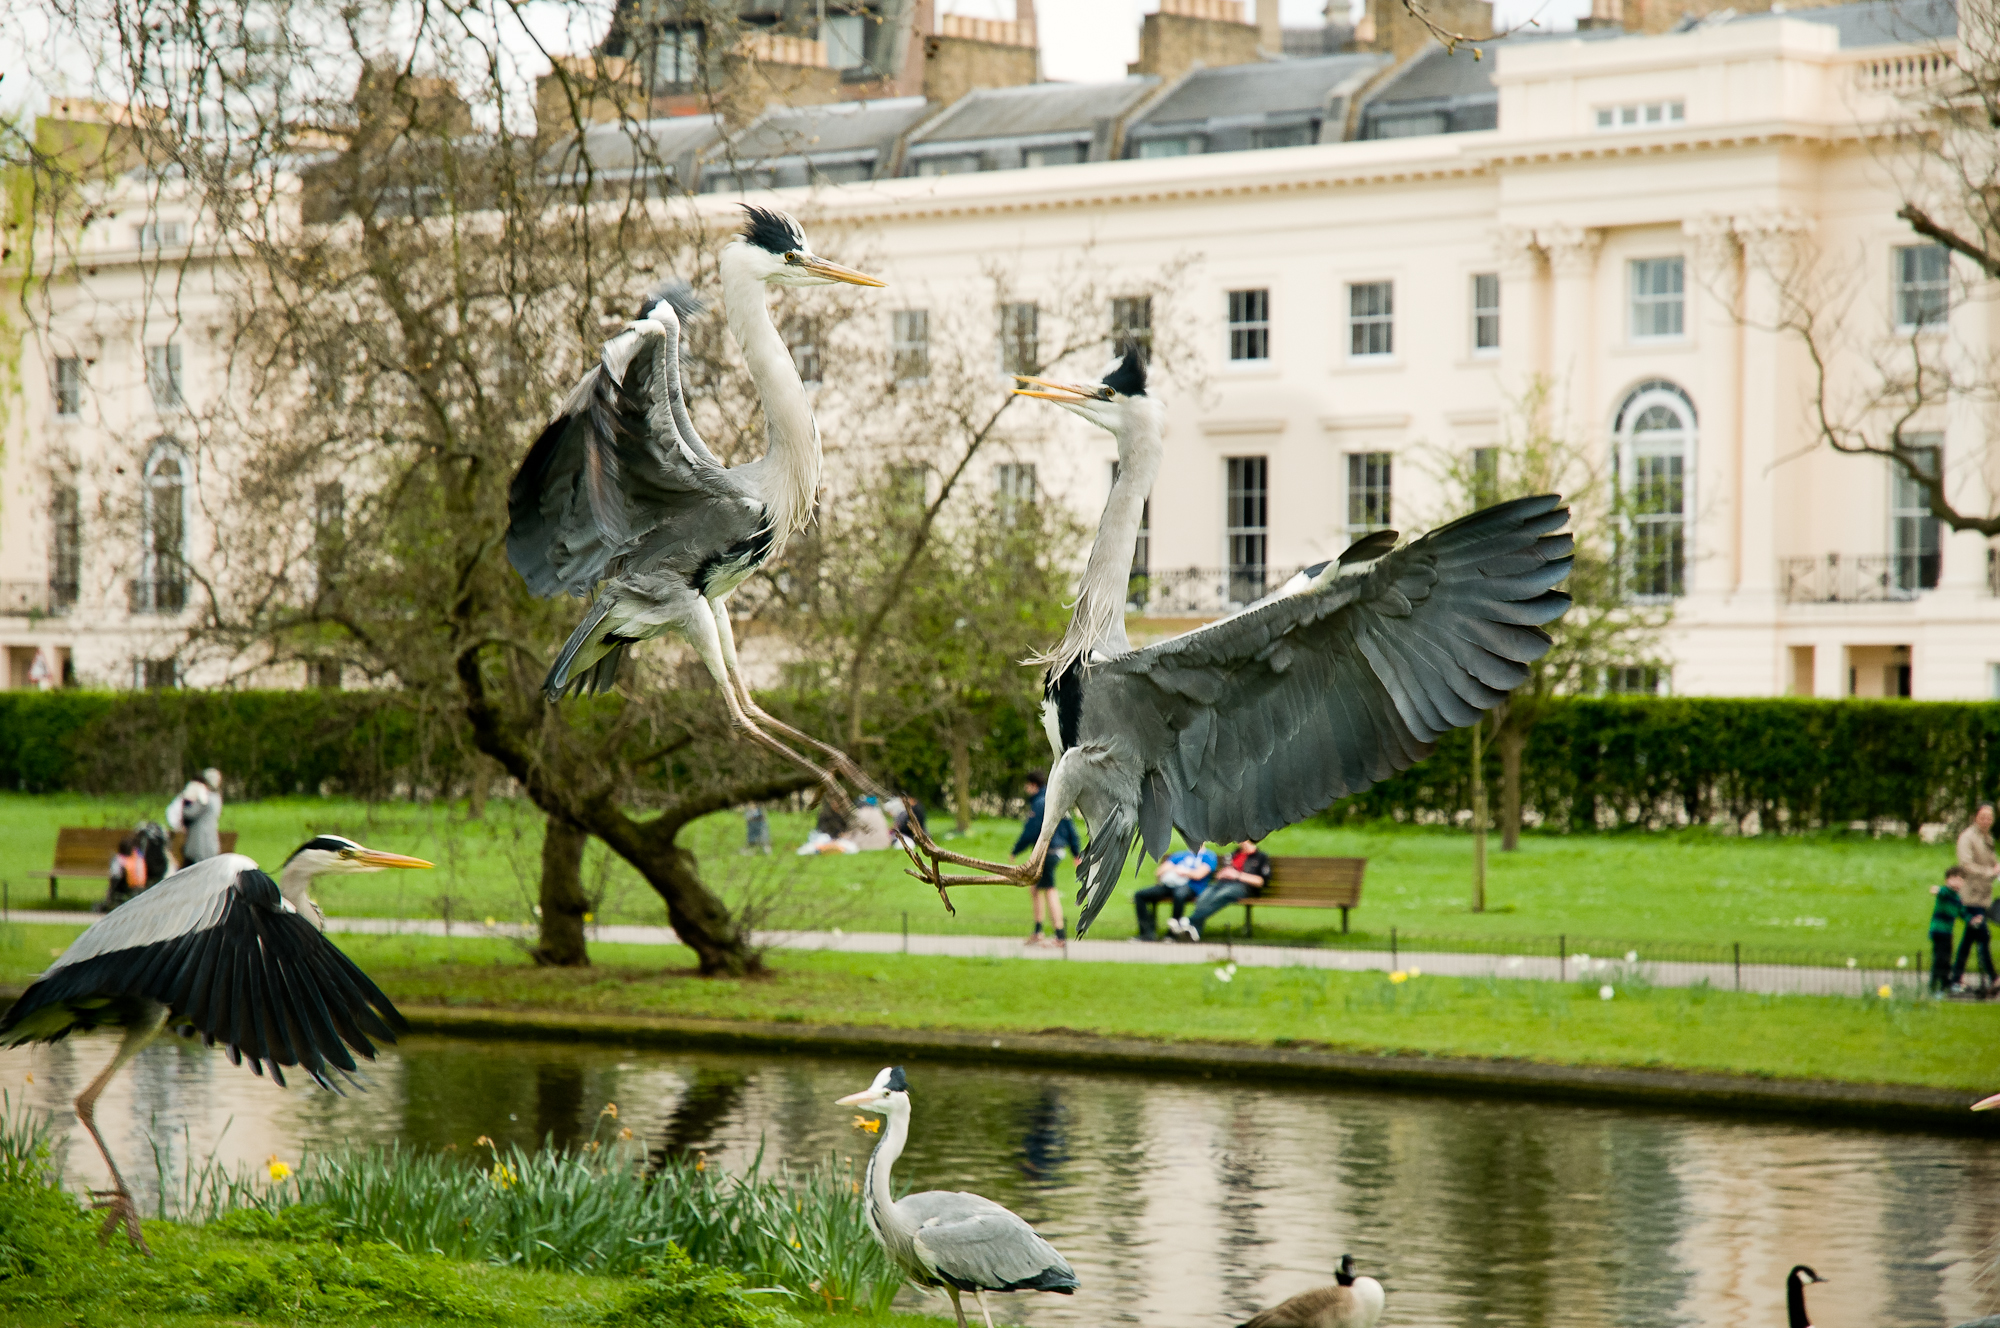 Grey herons fighting in a central London park.